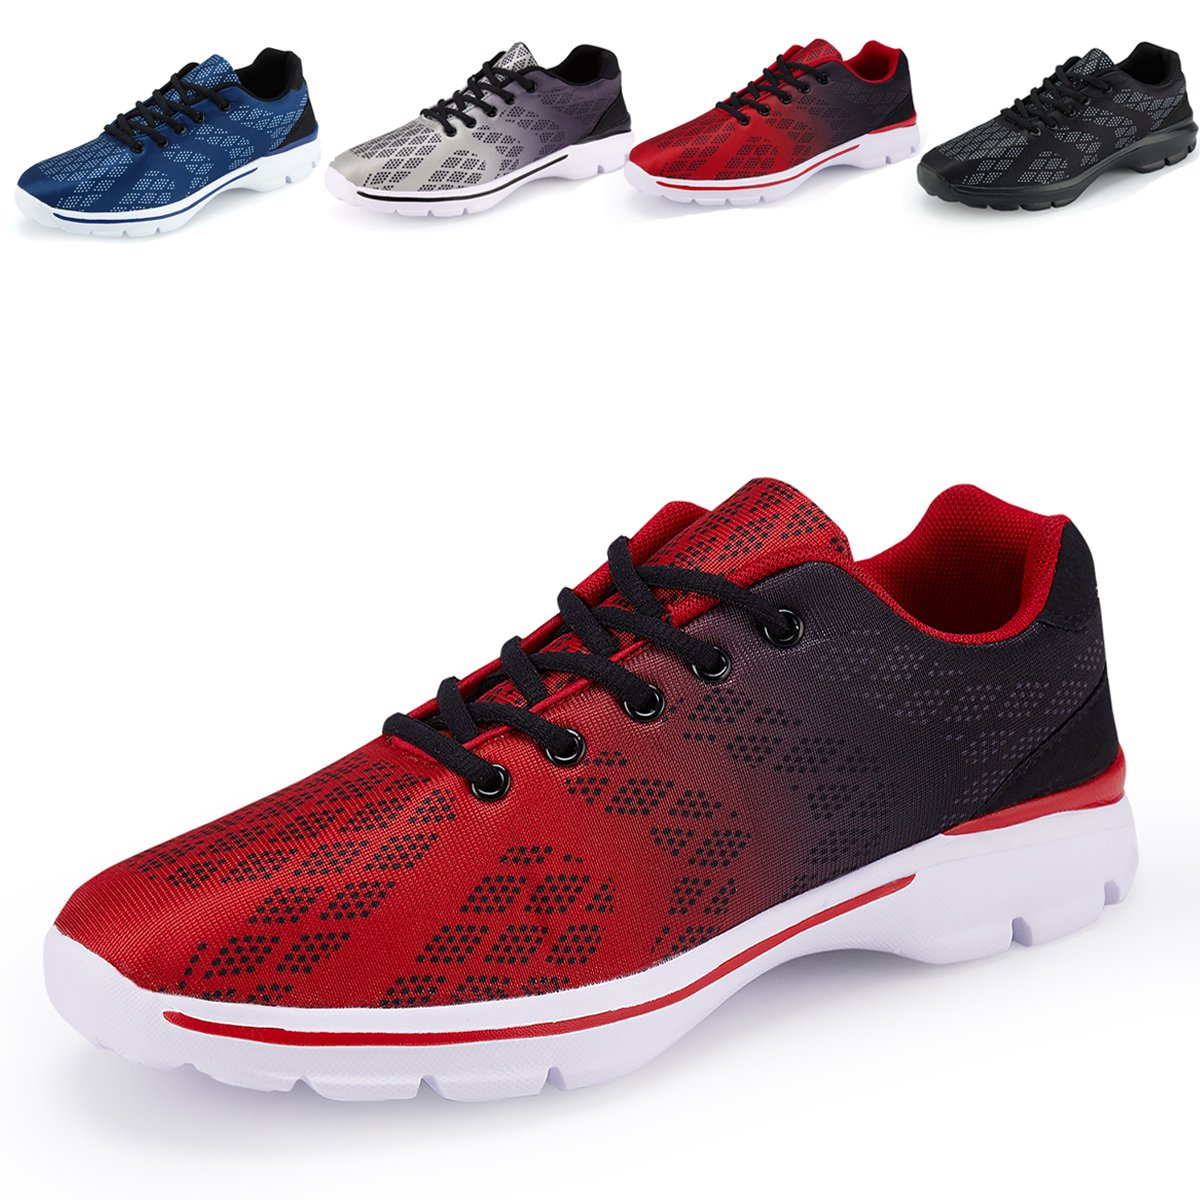 Mens Casual Walking Shoes Lightweight Breathable Running Tennis Sneakers (11 D(M) US, 1#red)